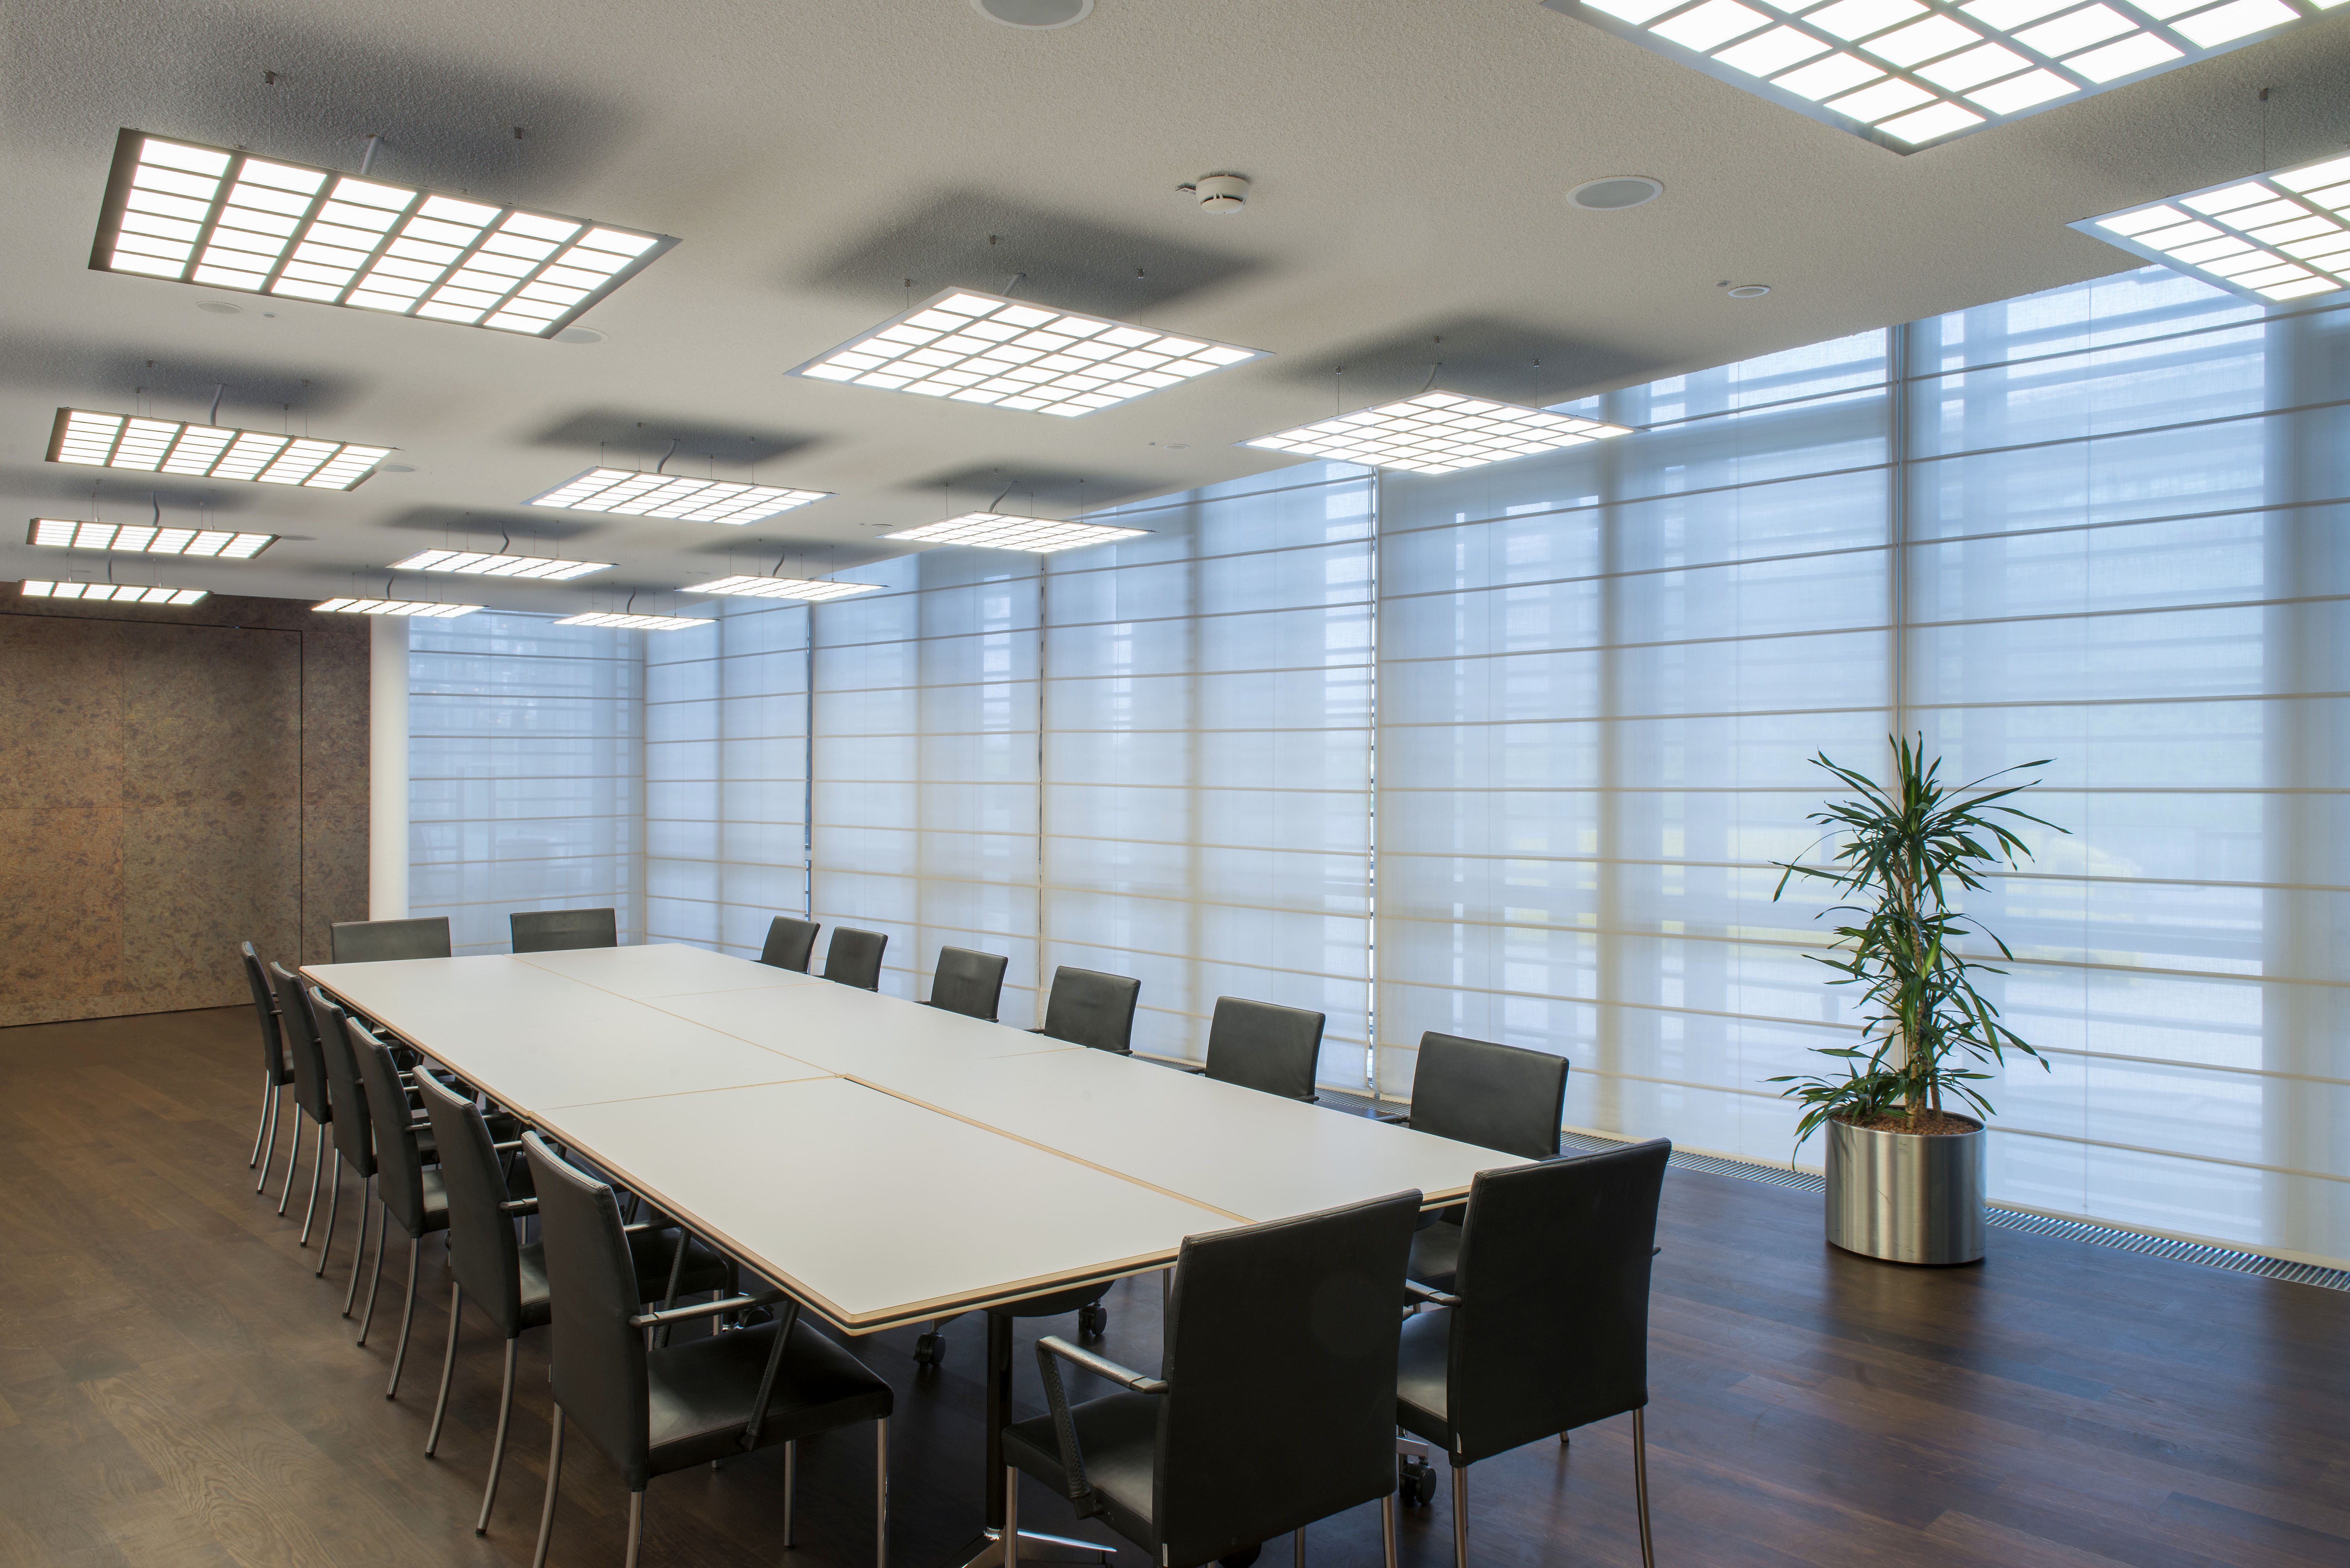 conference room at Audi Forum with OLED luminaires